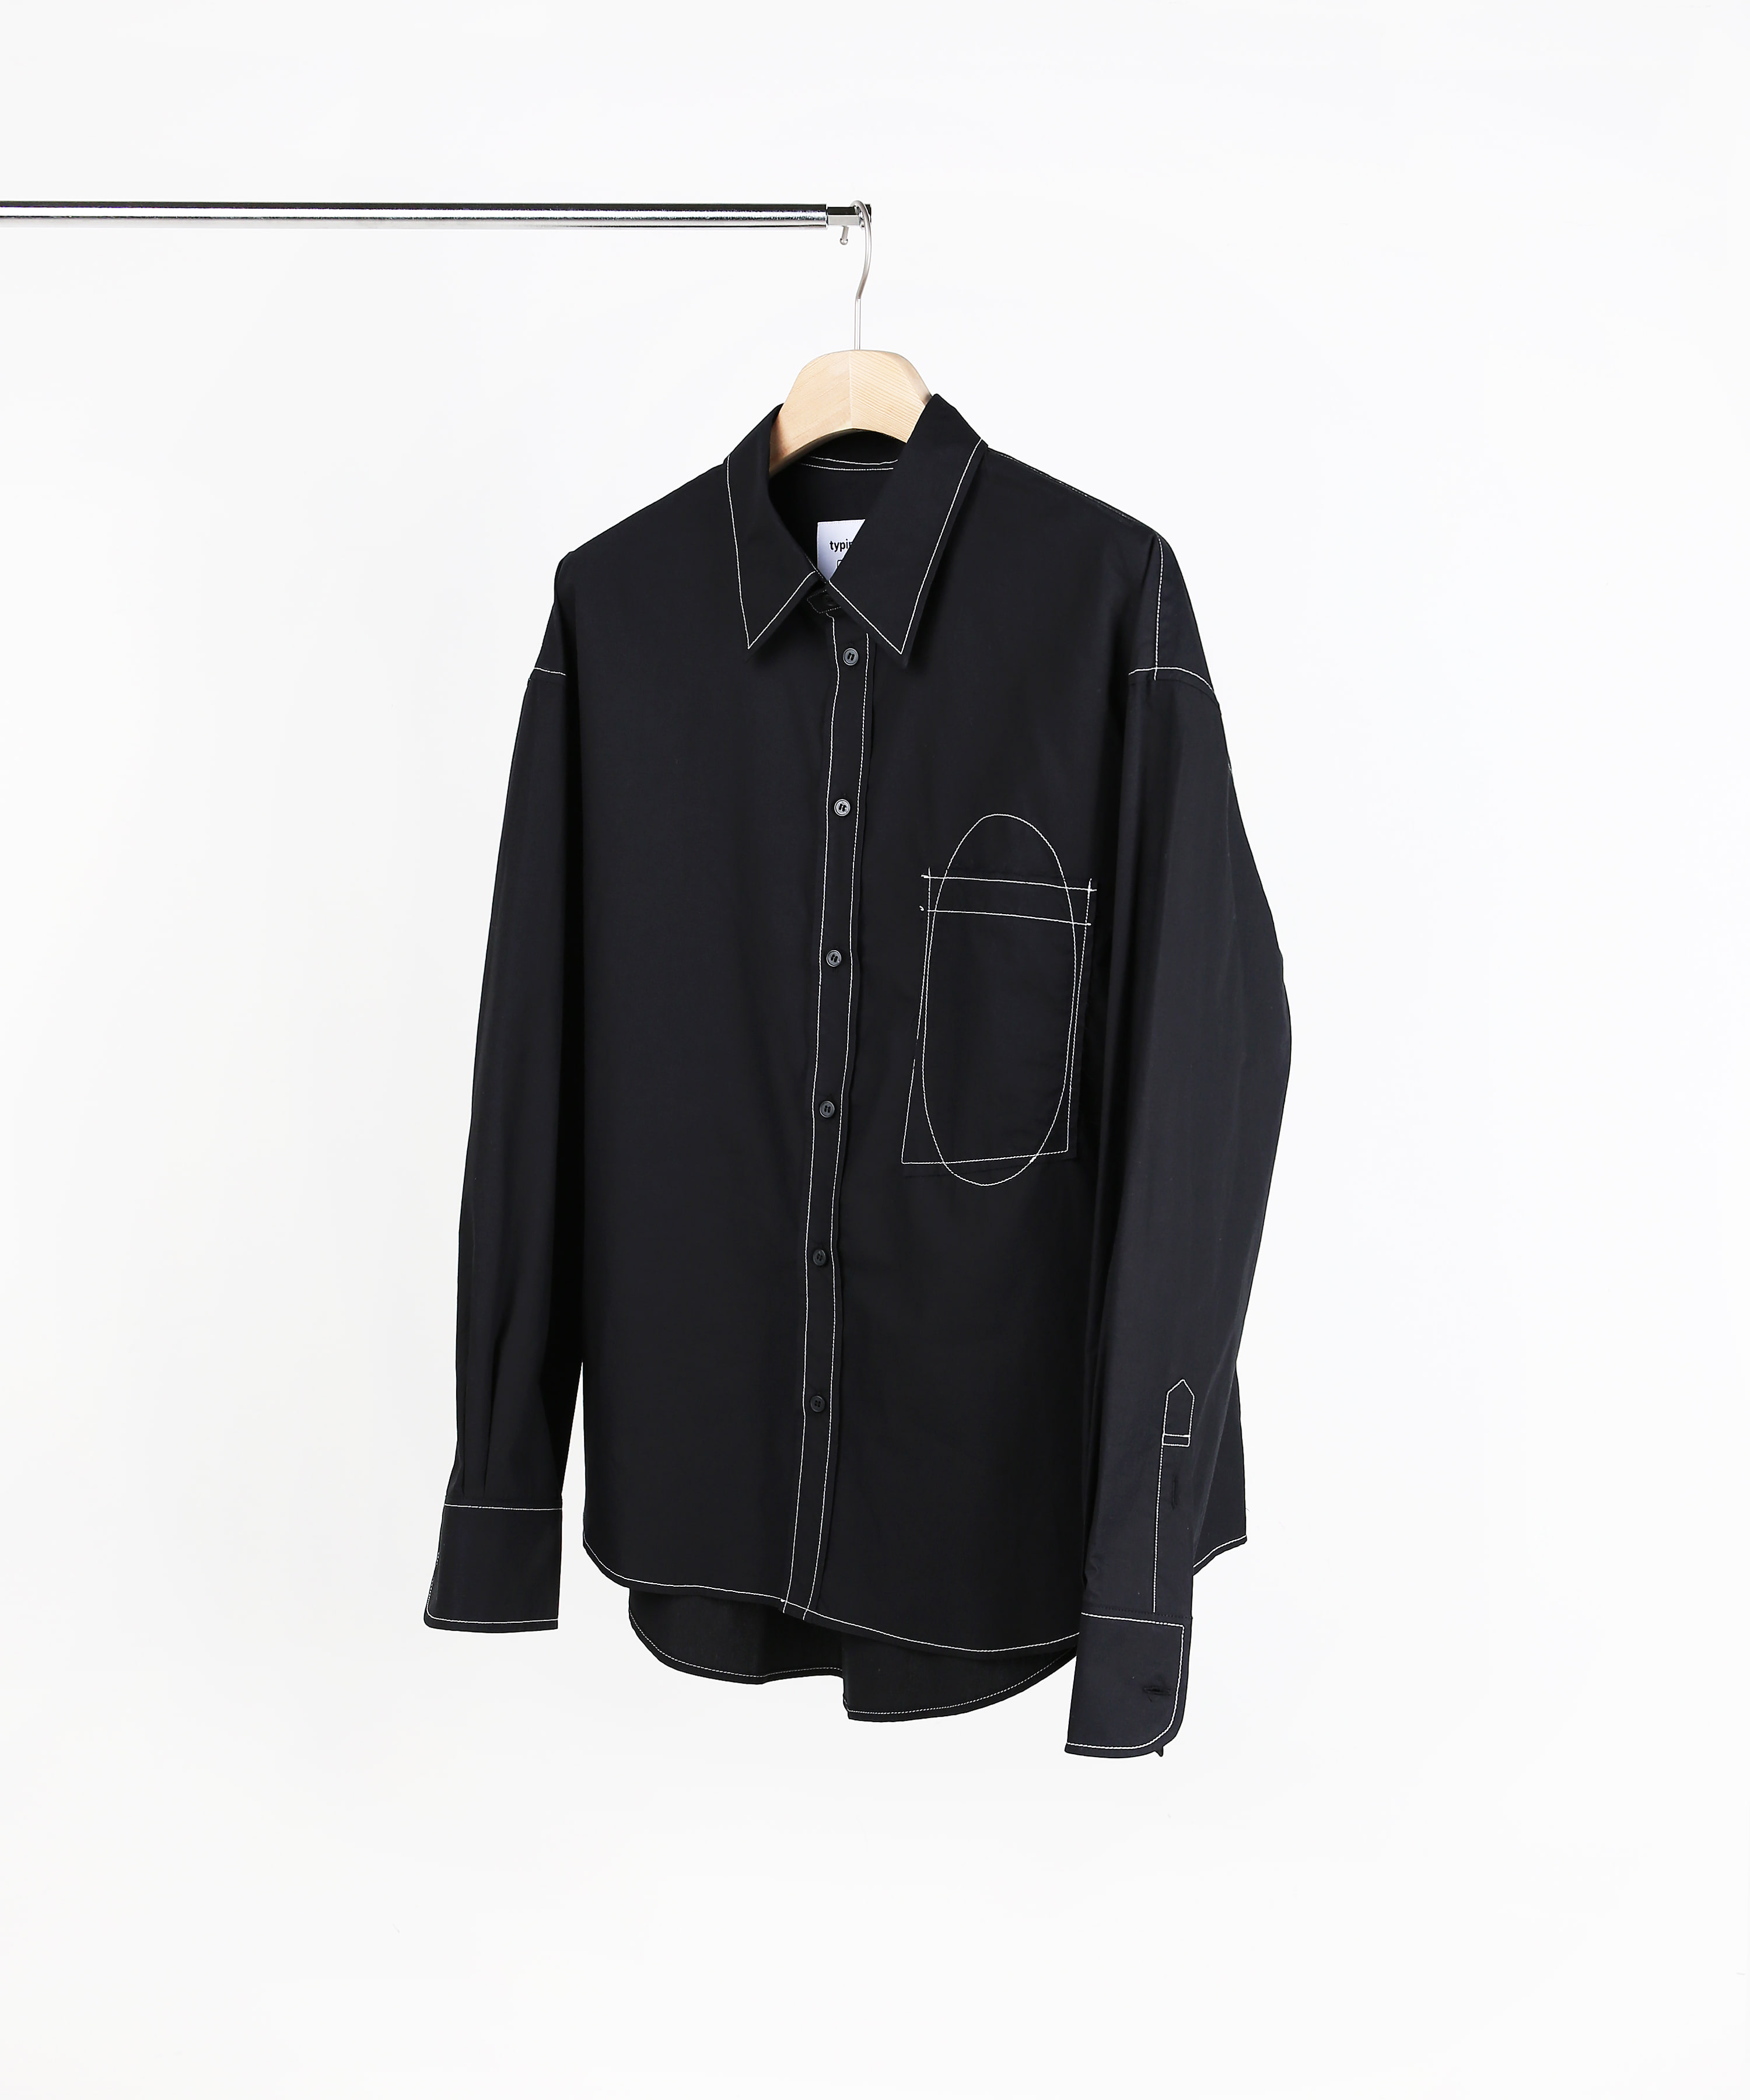 STITCH STANDARD SHIRTS BLACK